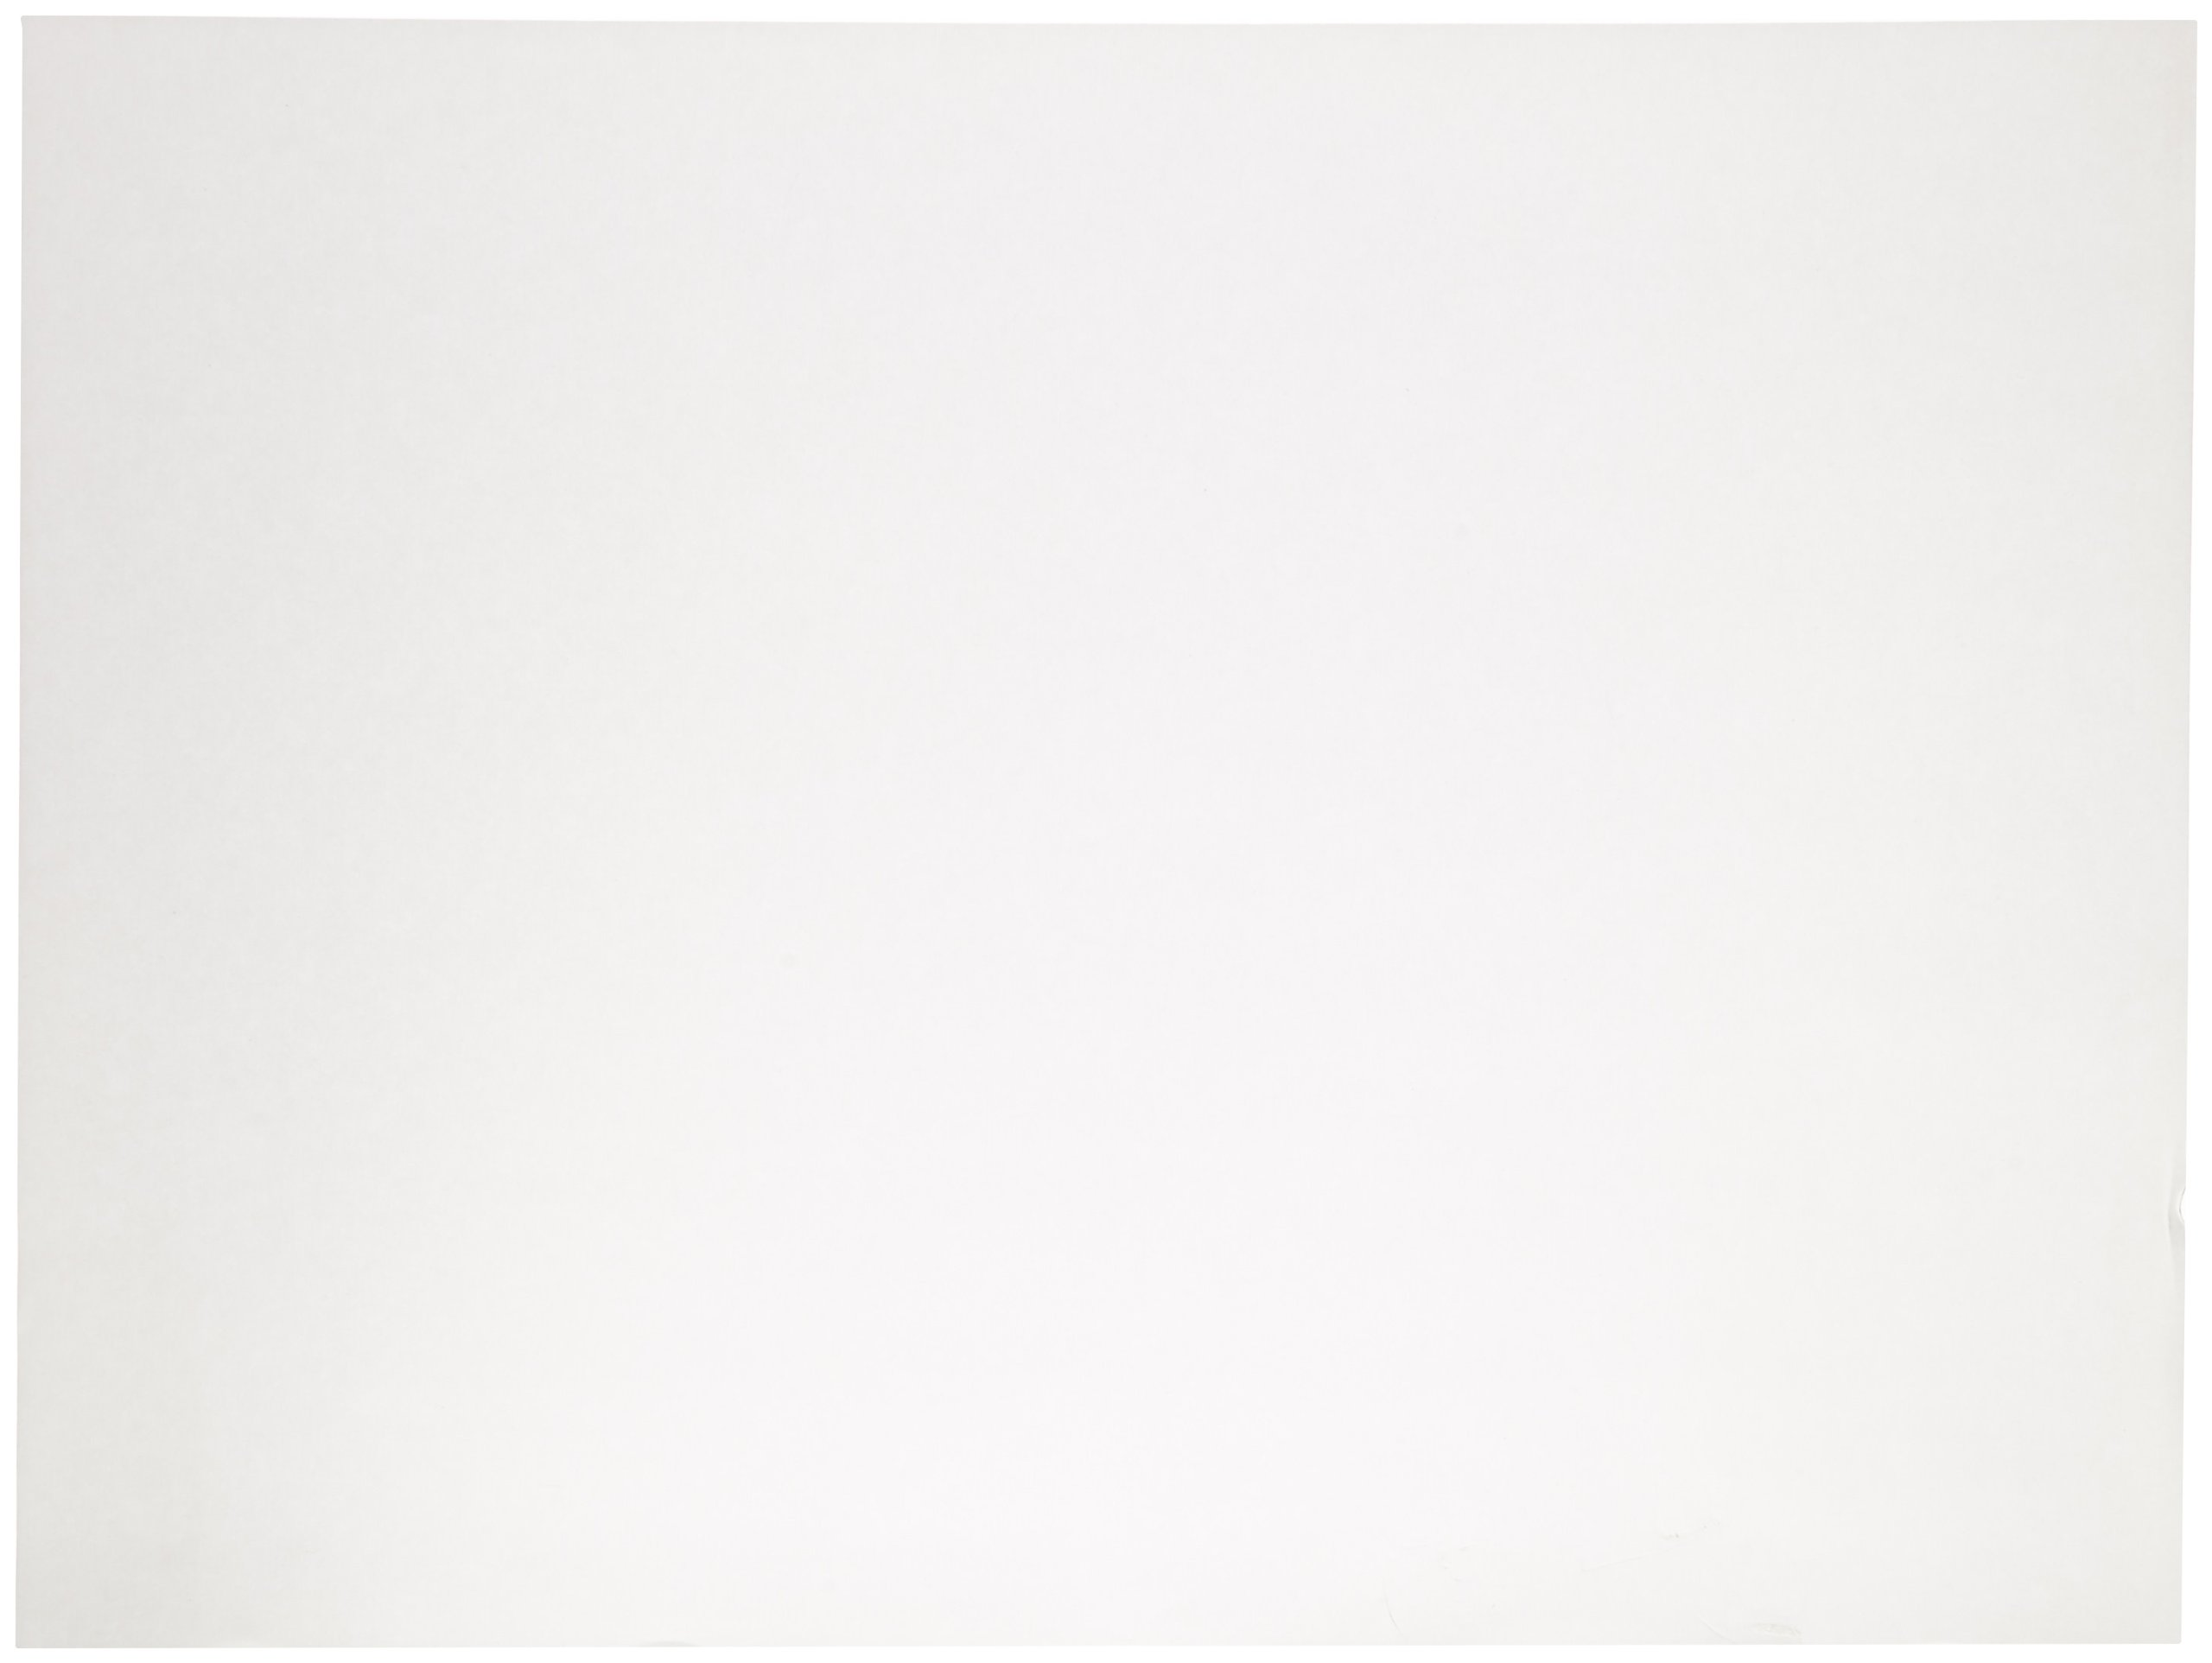 Sax Sulphite Drawing Paper, 80 lb, 18 x 24 Inches, Extra-White, Pack of 500 by Sax